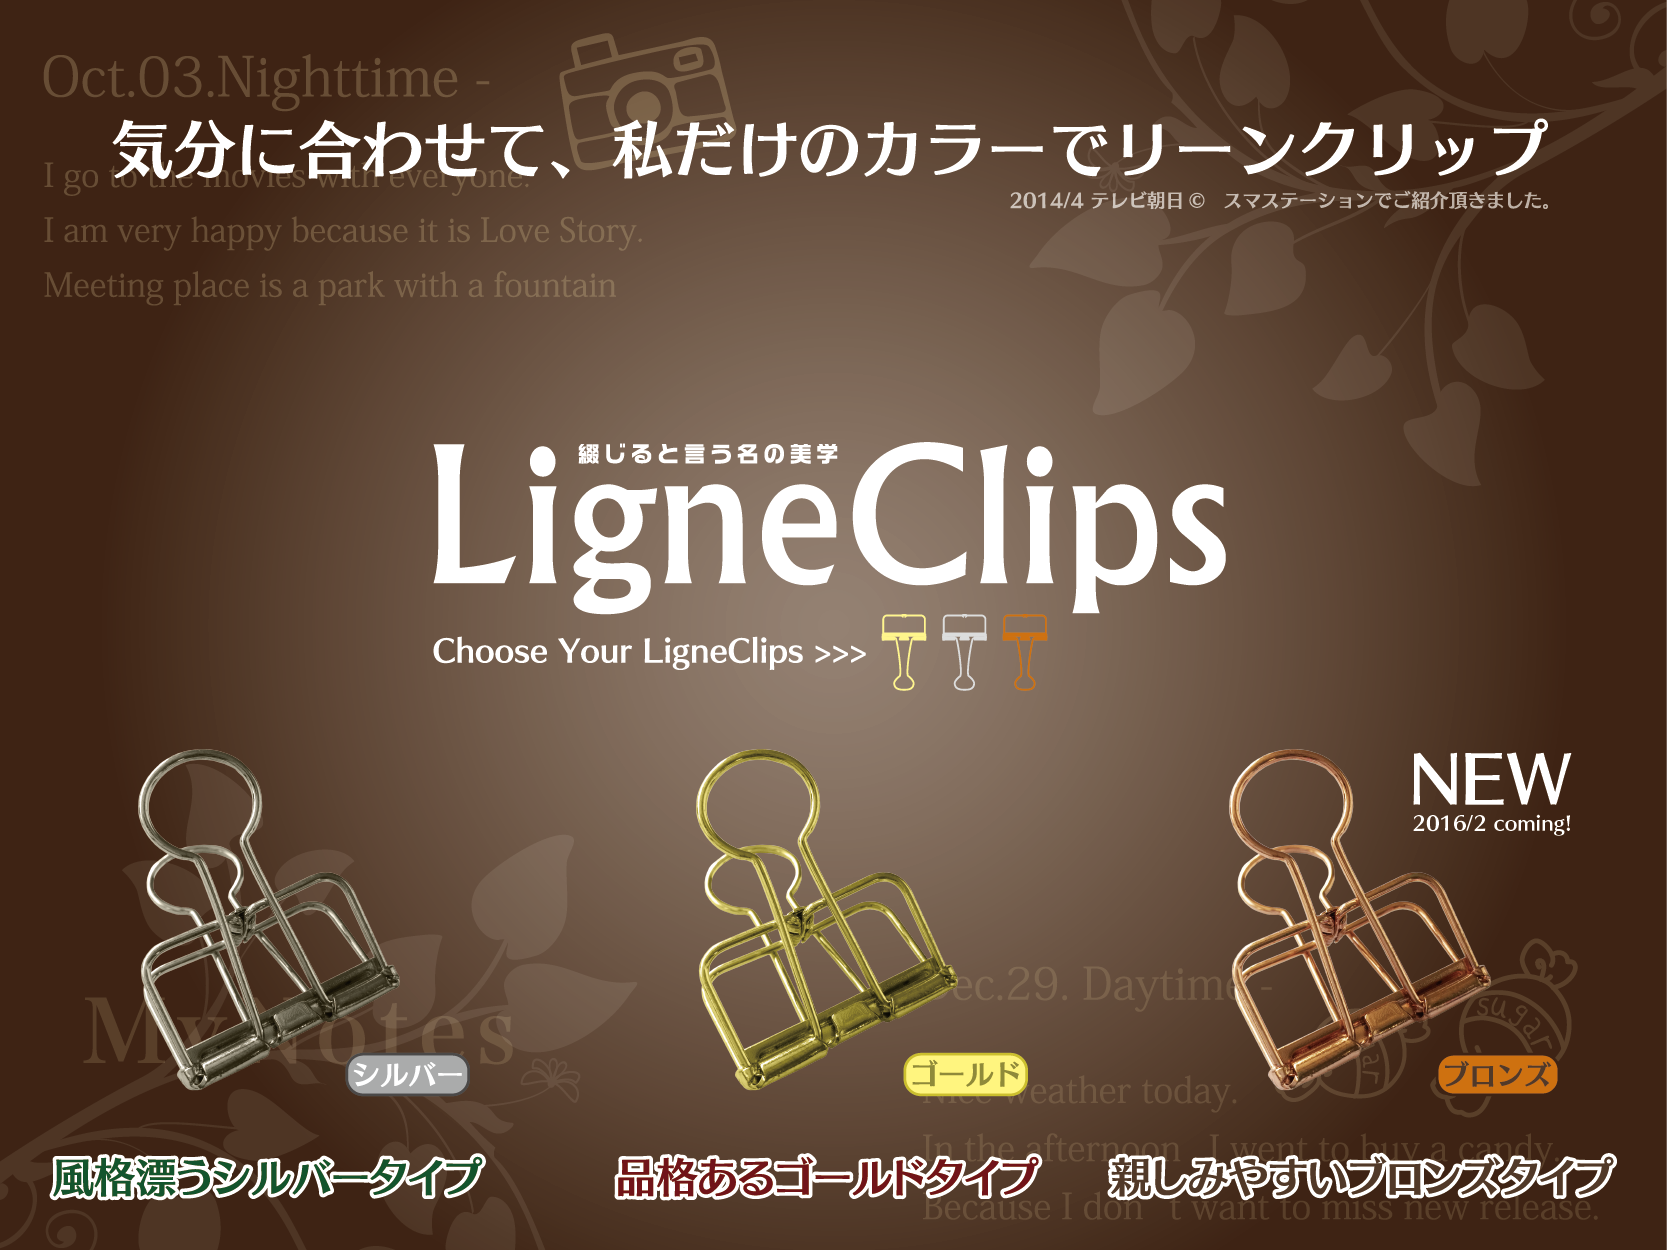 Choose Your LigneClips 2016年新商品ブロンズ